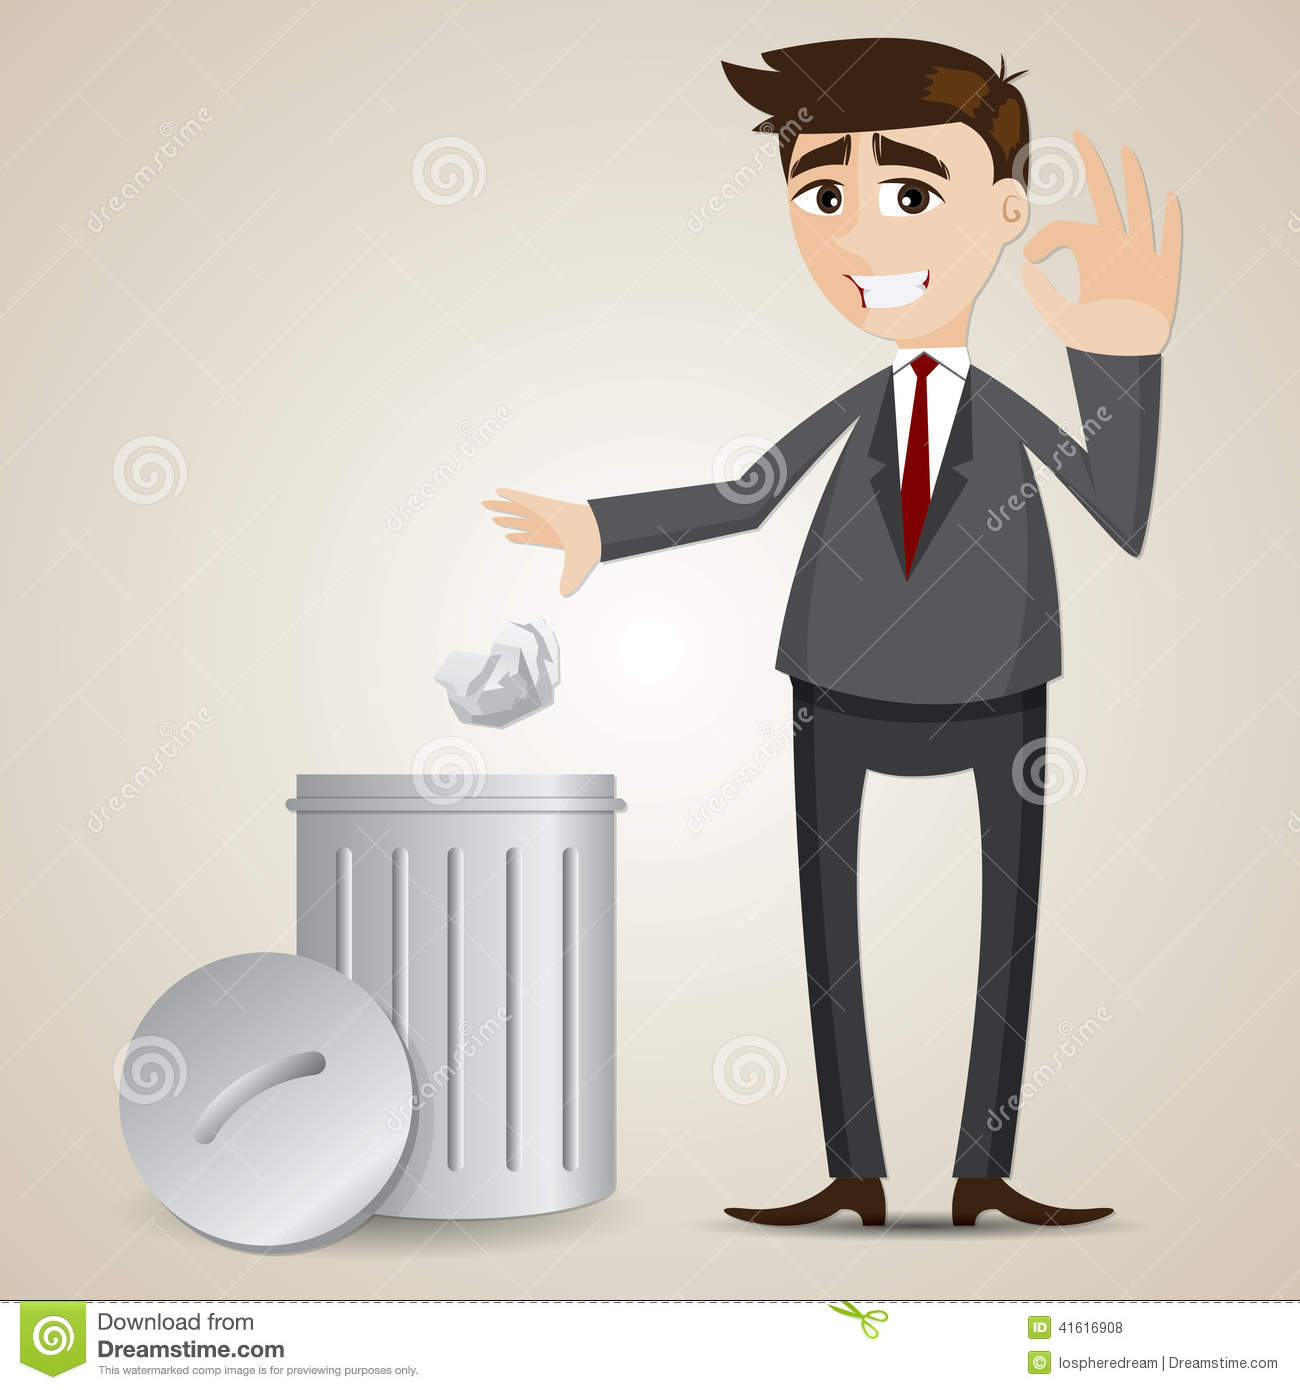 Cartoon Businessman Put Paper In Recycle Bin Stock Vector - Image ...